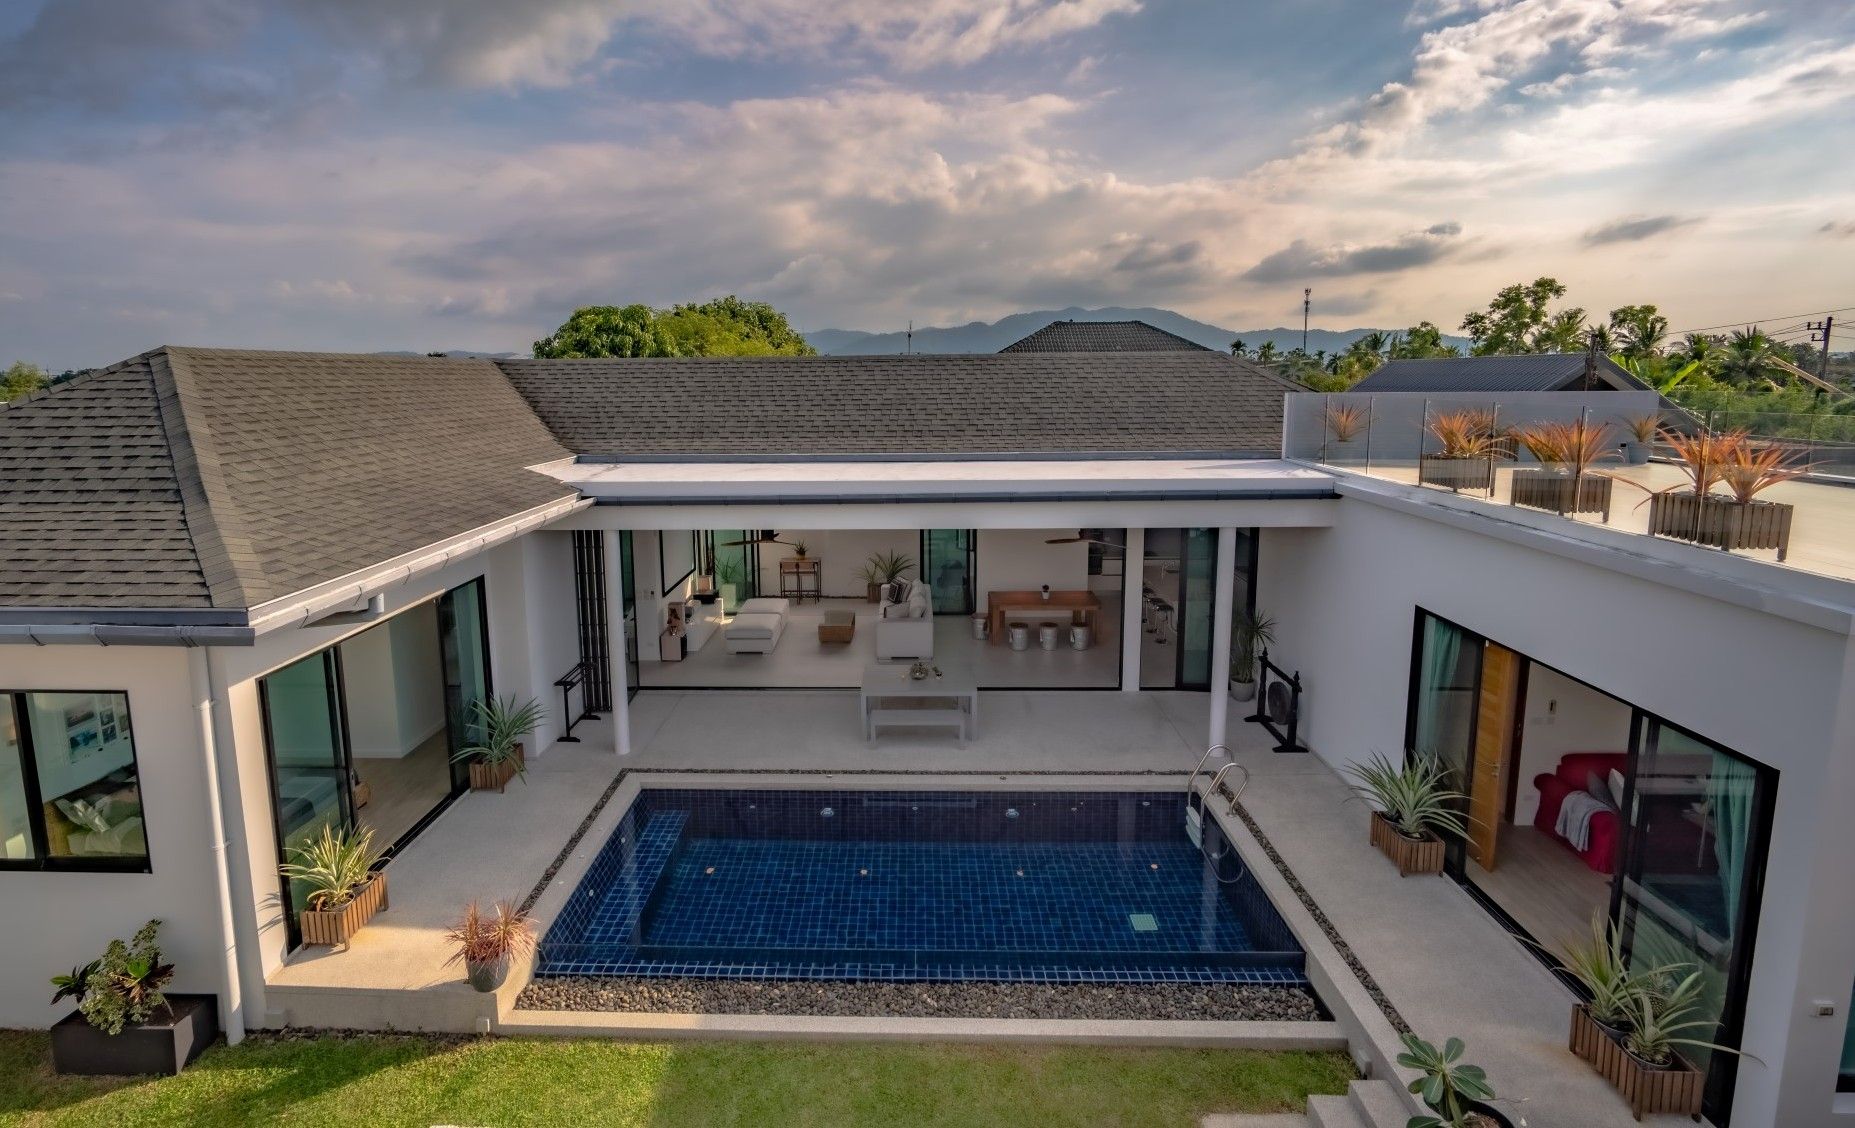 See Great Family Pool Villa details